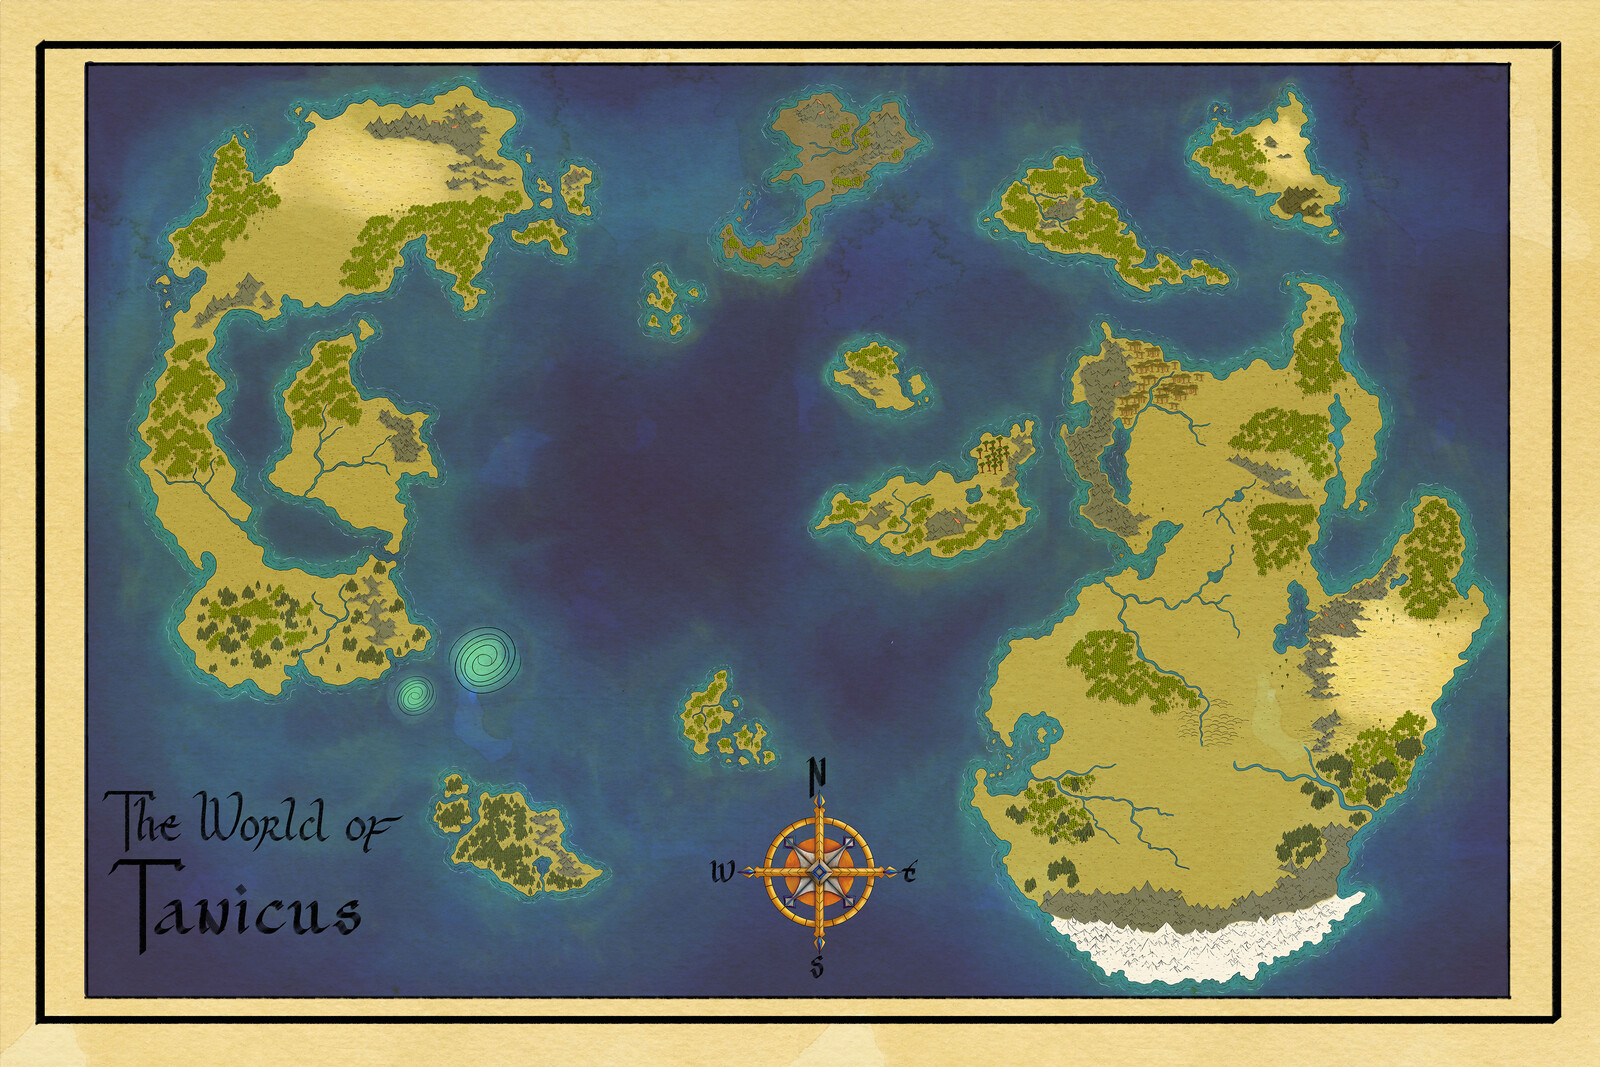 Tanicus World Map